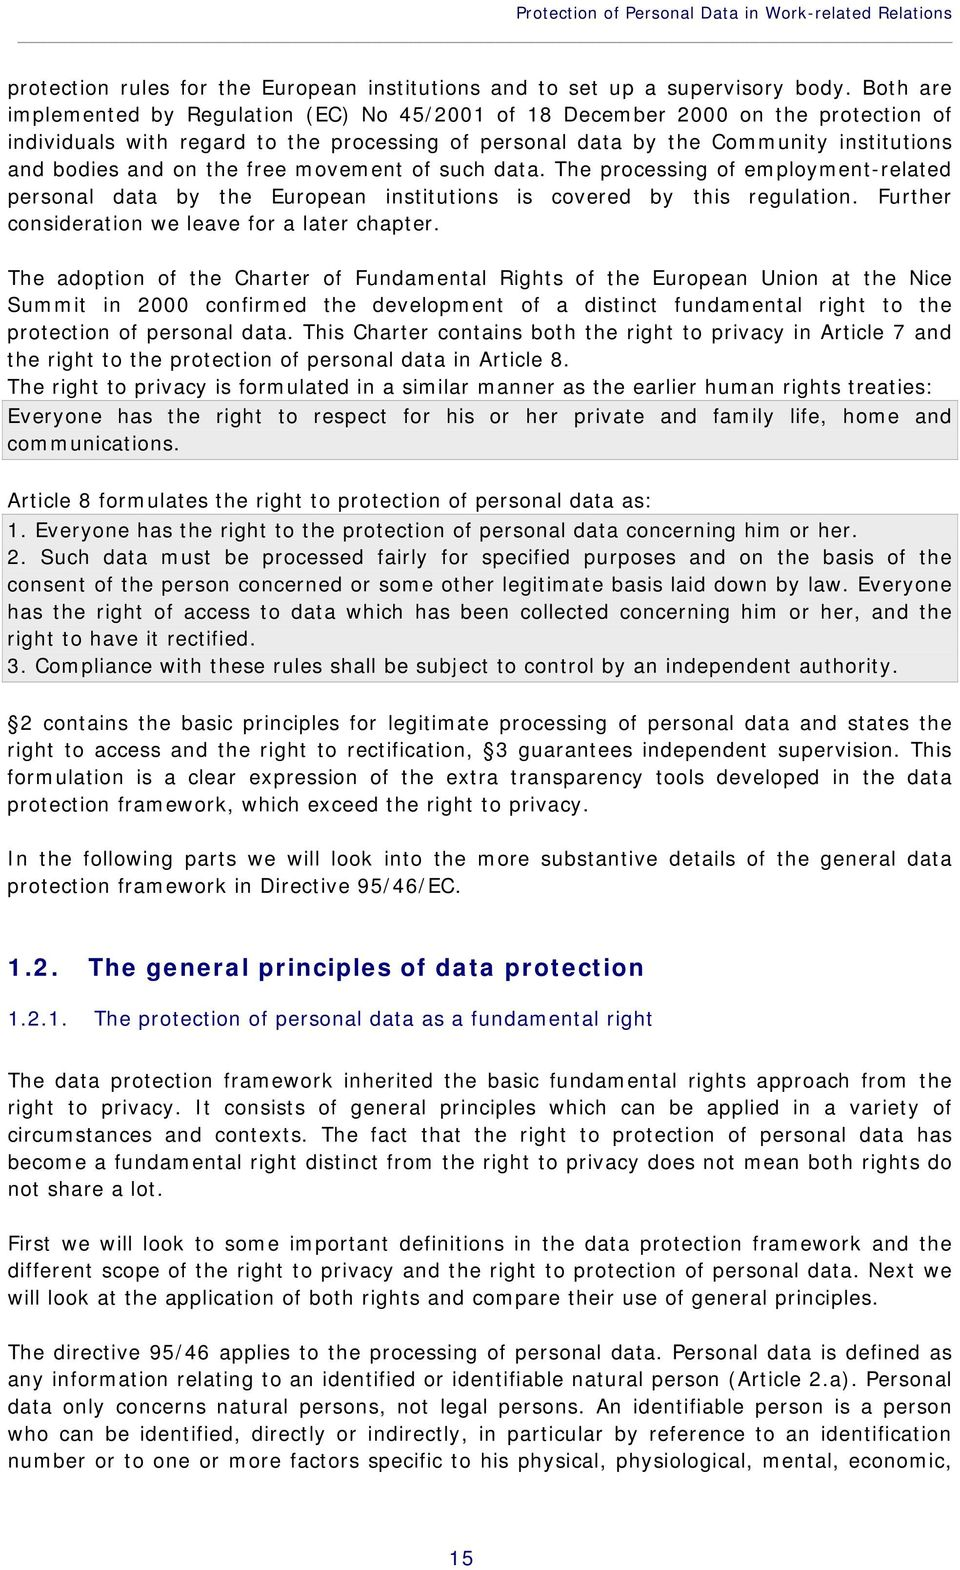 the free movement of such data. The processing of employment-related personal data by the European institutions is covered by this regulation. Further consideration we leave for a later chapter.